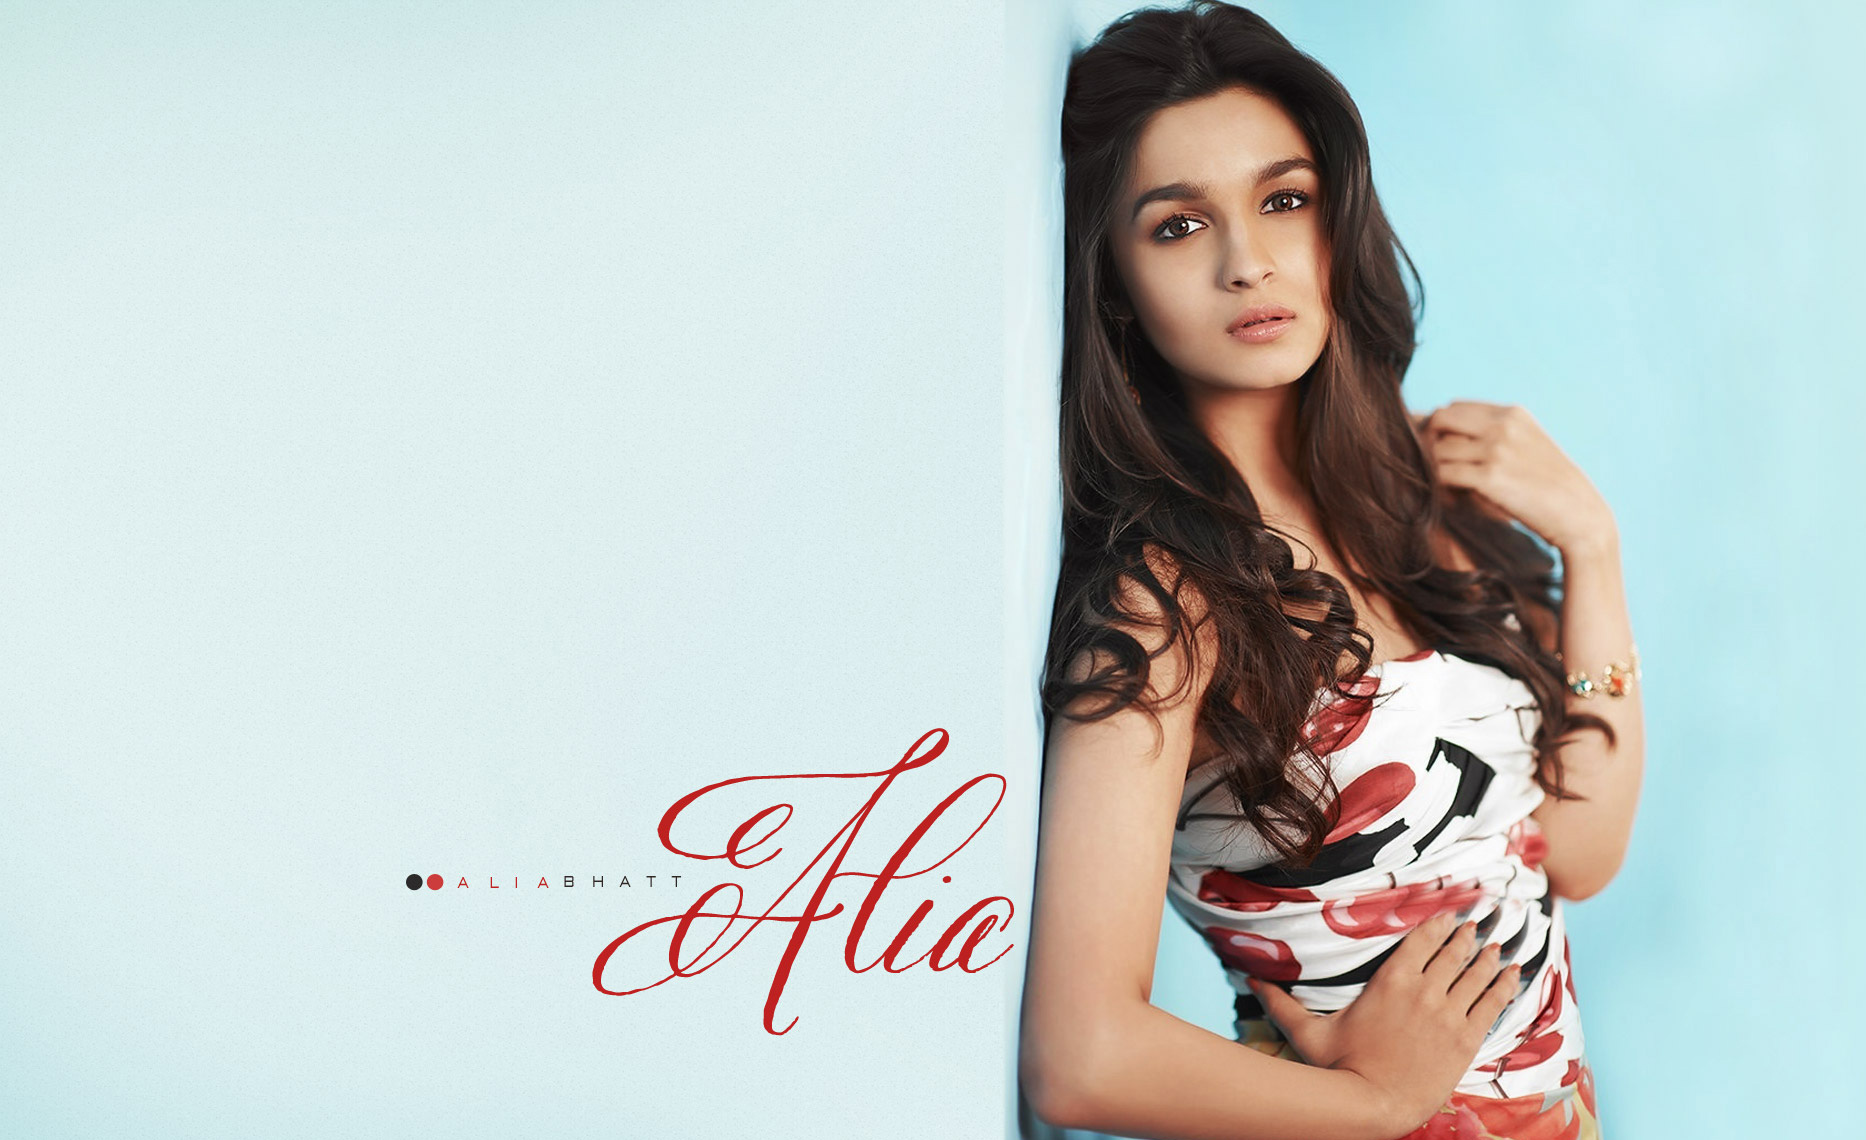 Alia Bhatt   Latest Images Photos Pictures Wallpaper HD Quality 1866x1140